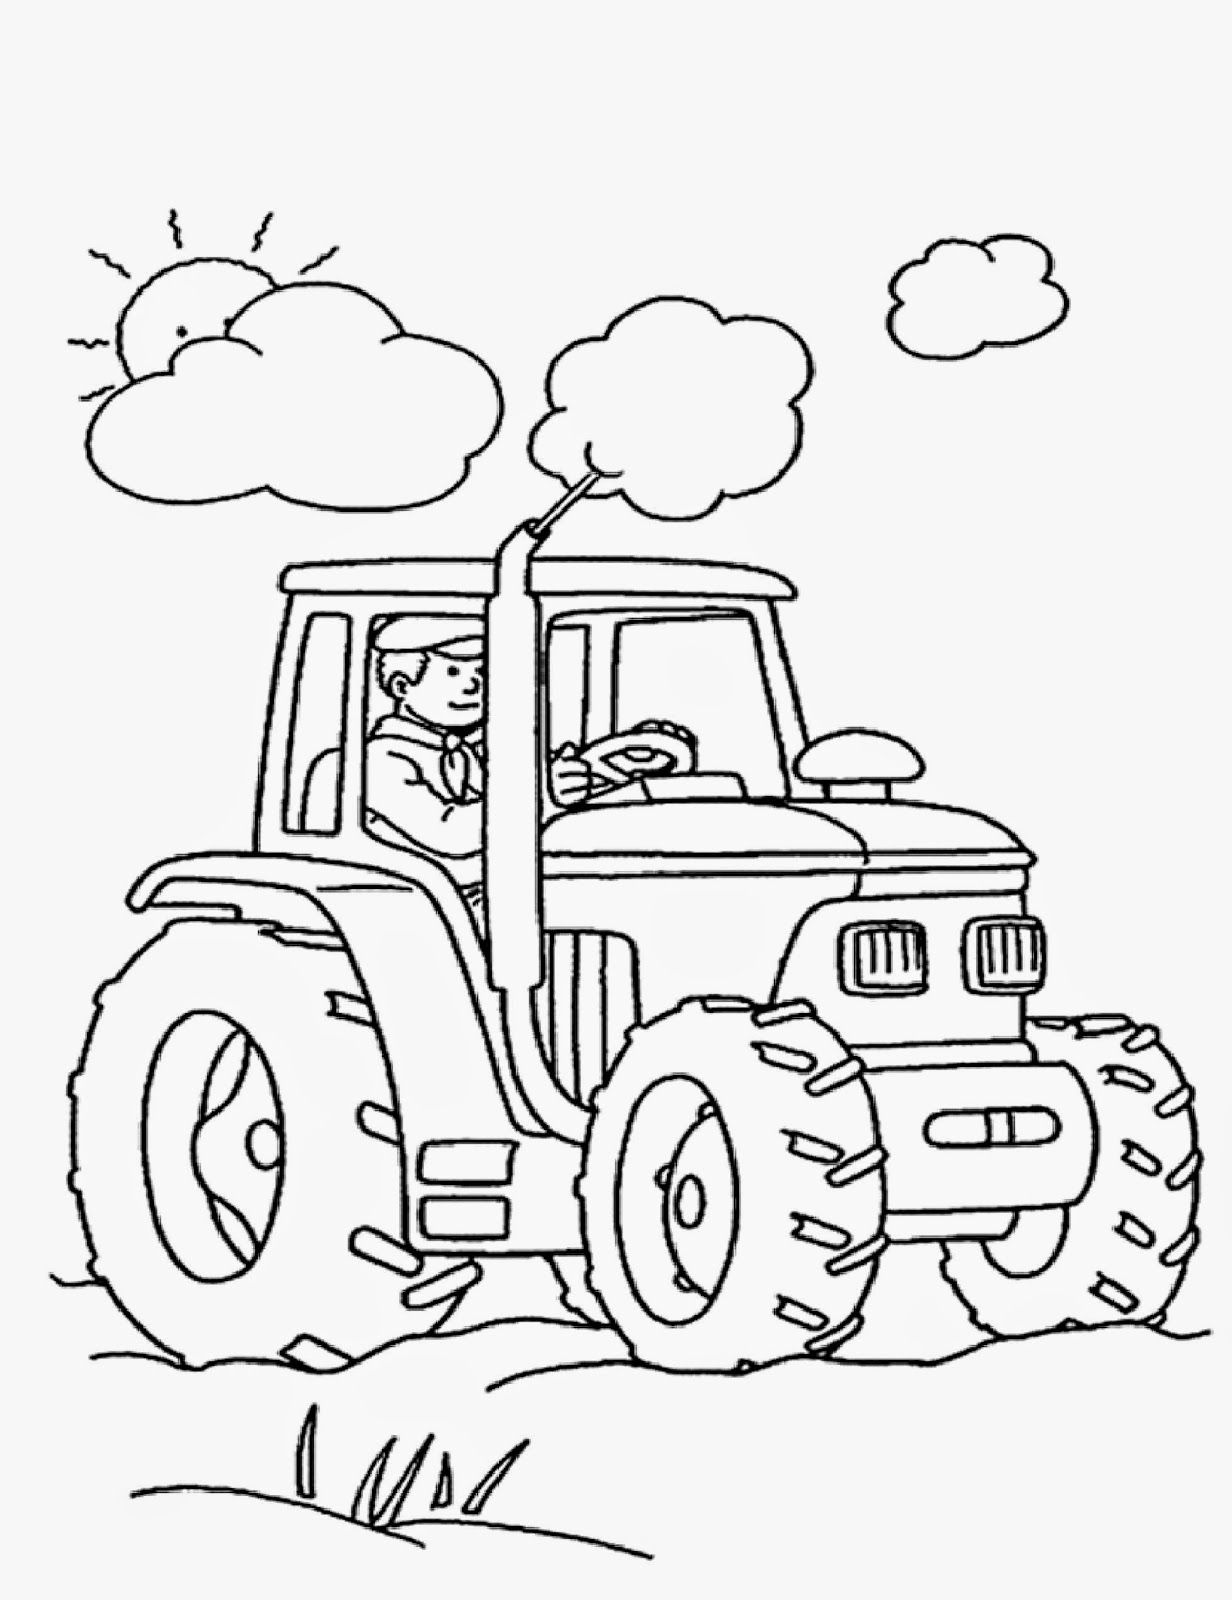 coloring pages for boys   Free Large Images